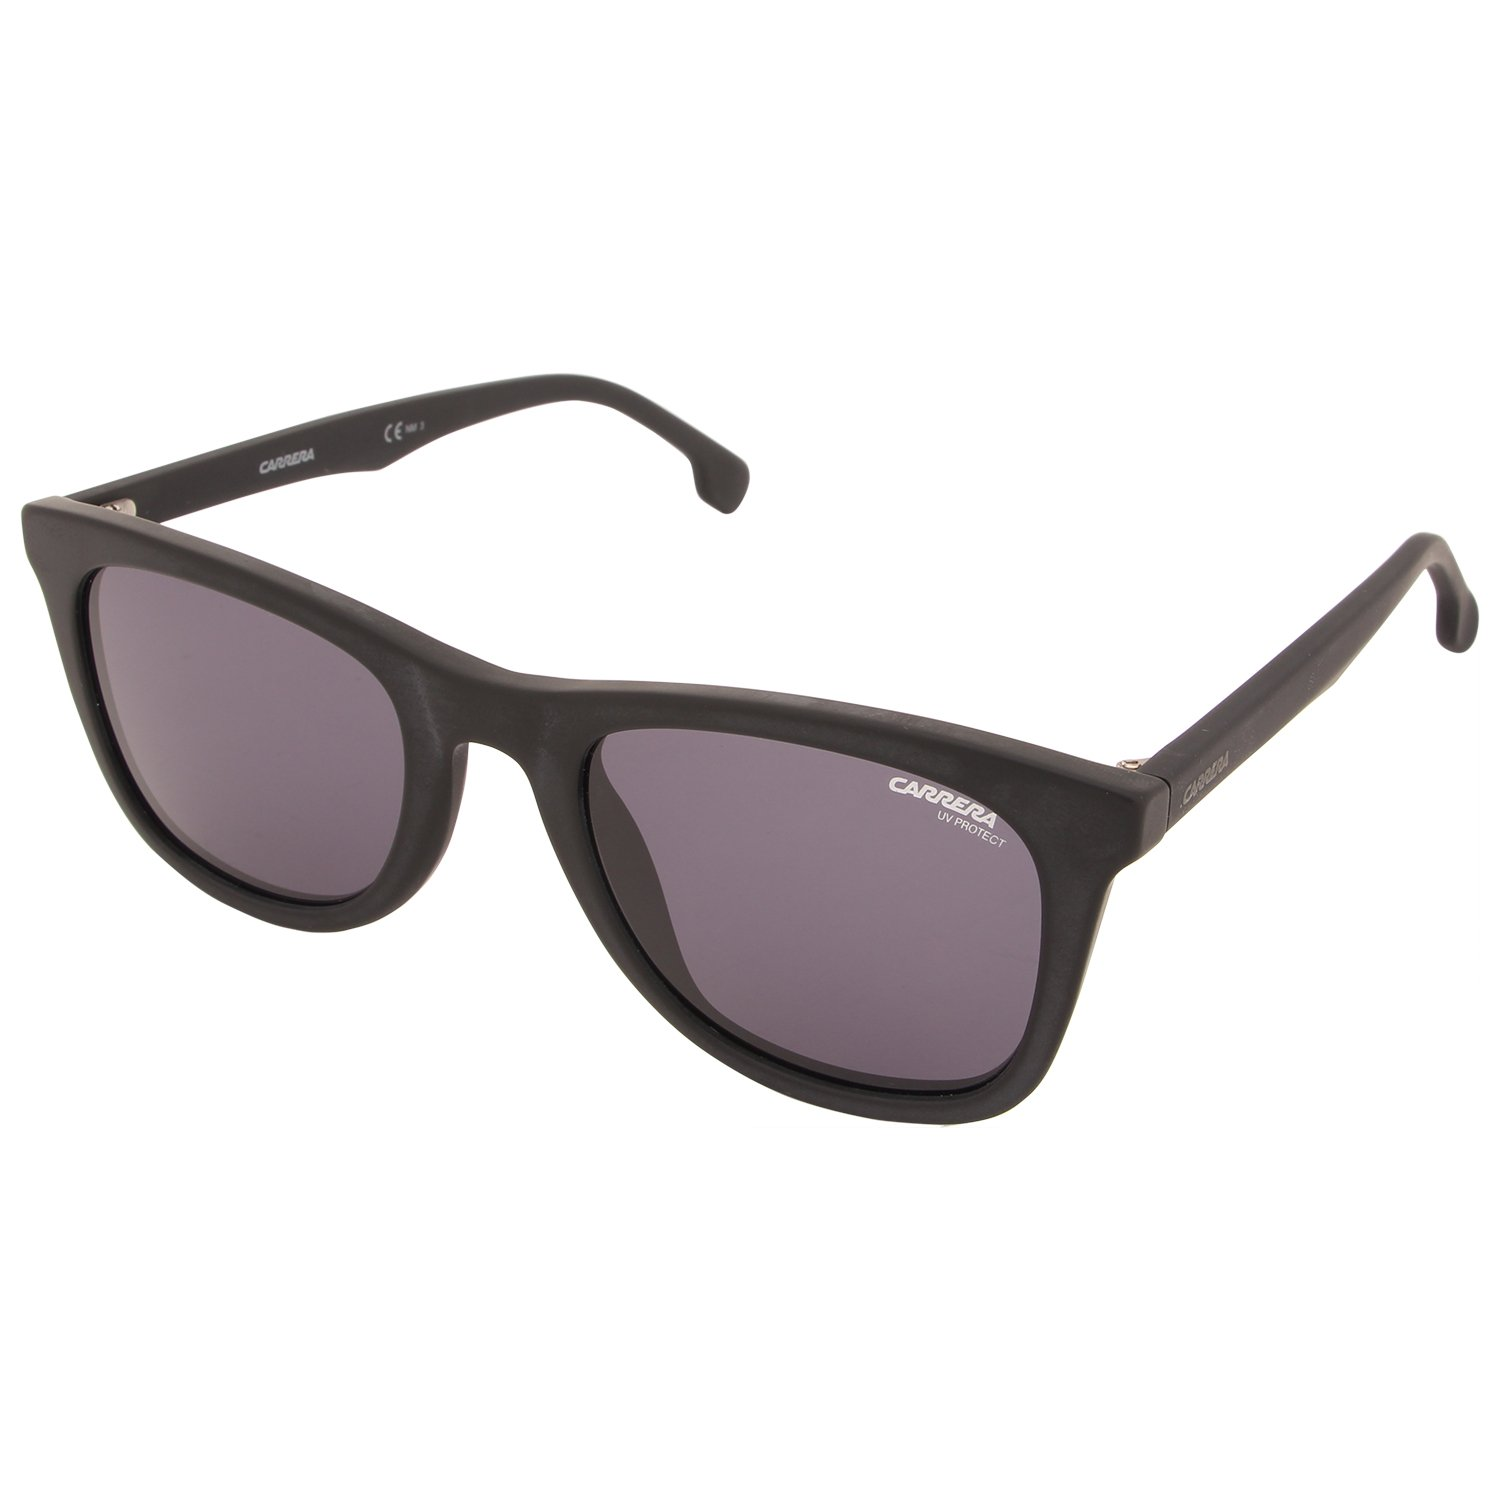 4feb980075 Carrera UV Protected Rectangular Unisex Sunglasses - (CARRERA 134 S 003  51IR